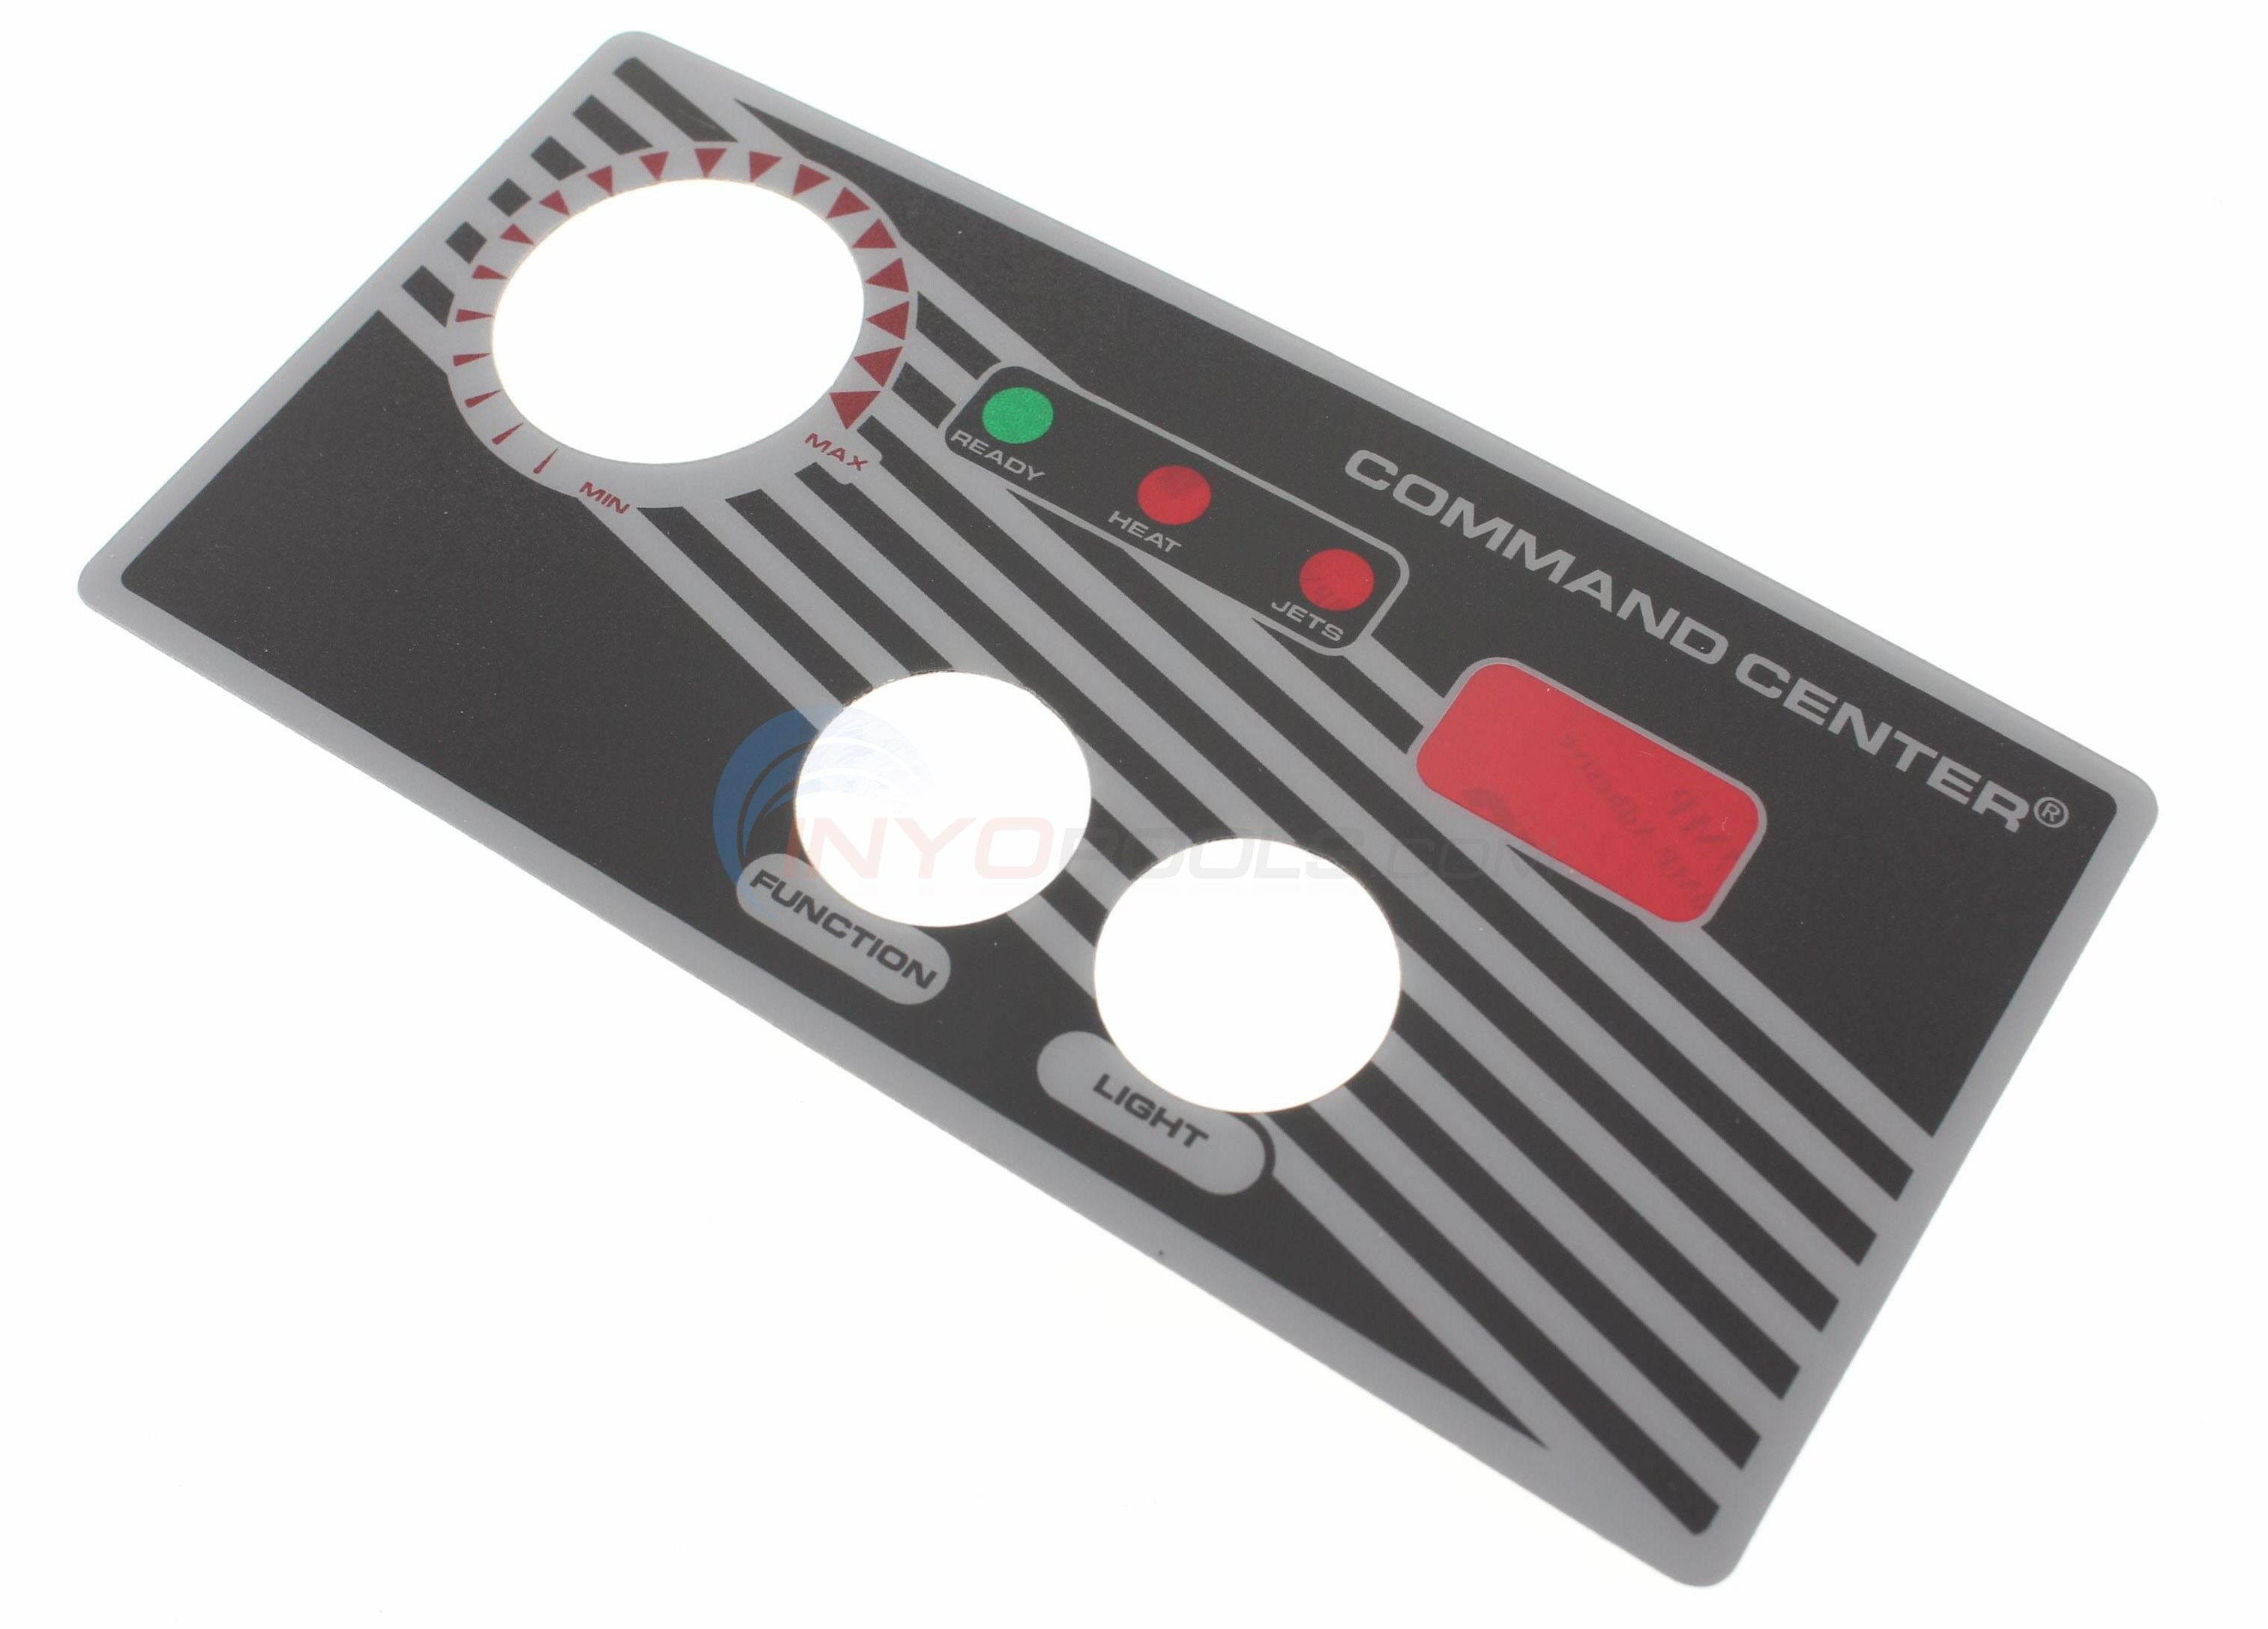 2-button faceplate with display